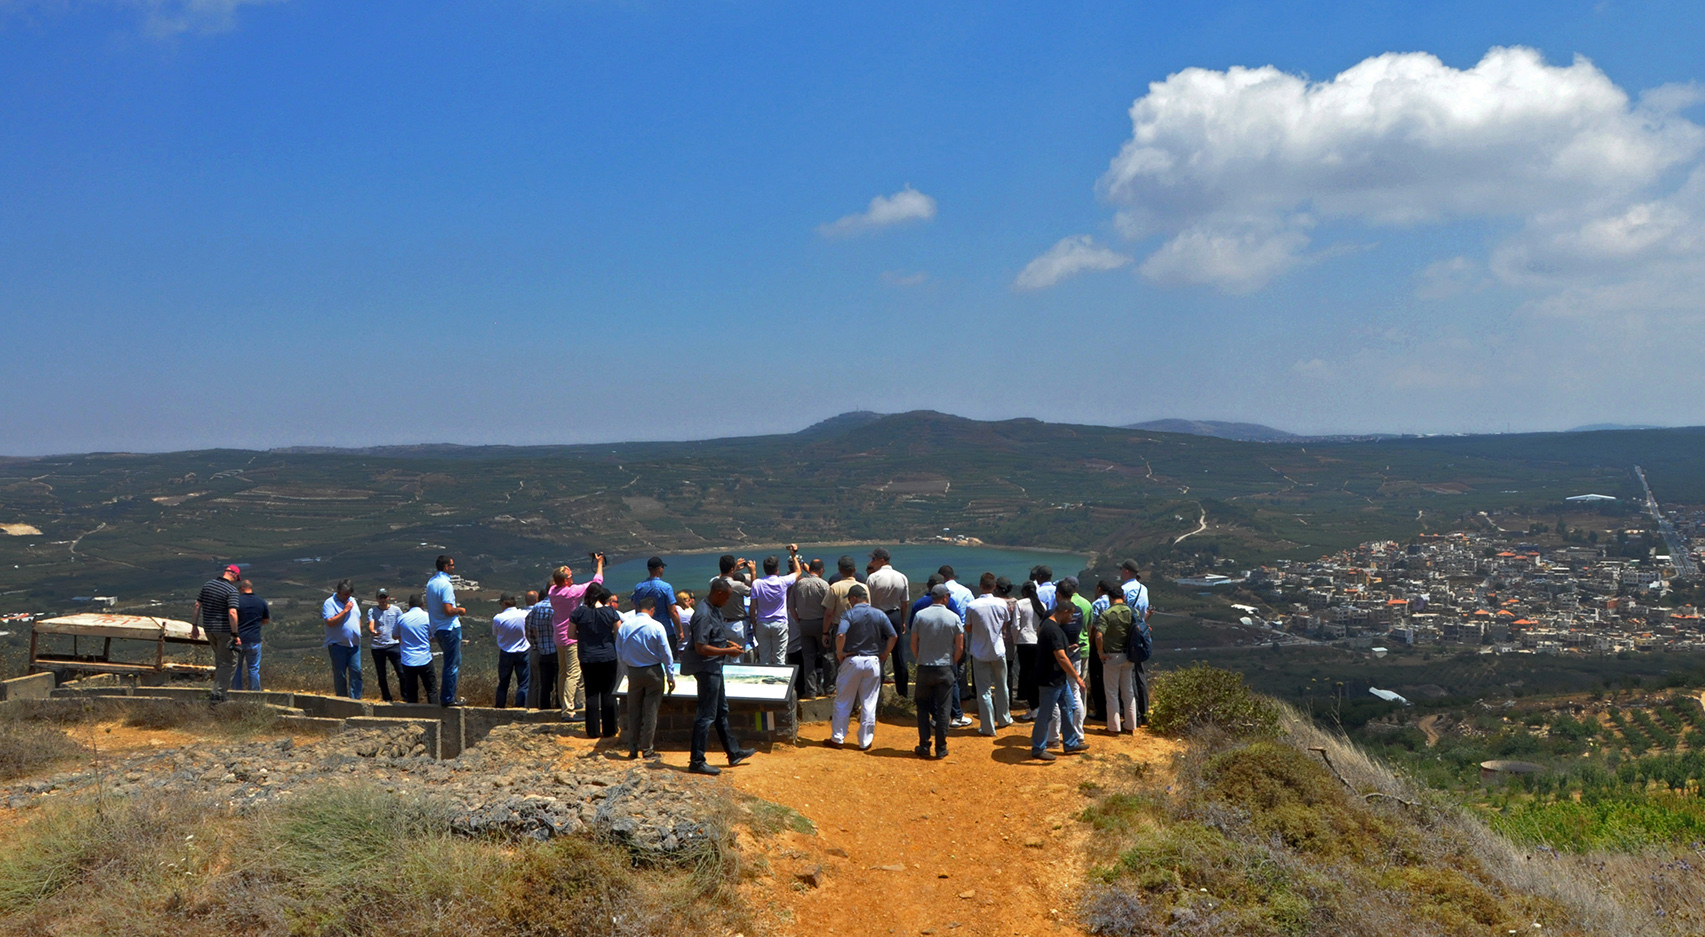 A group of people looks down over a green landscape with low hills and a small body of water, a small city visible at the side, a wide blue sky overhead.